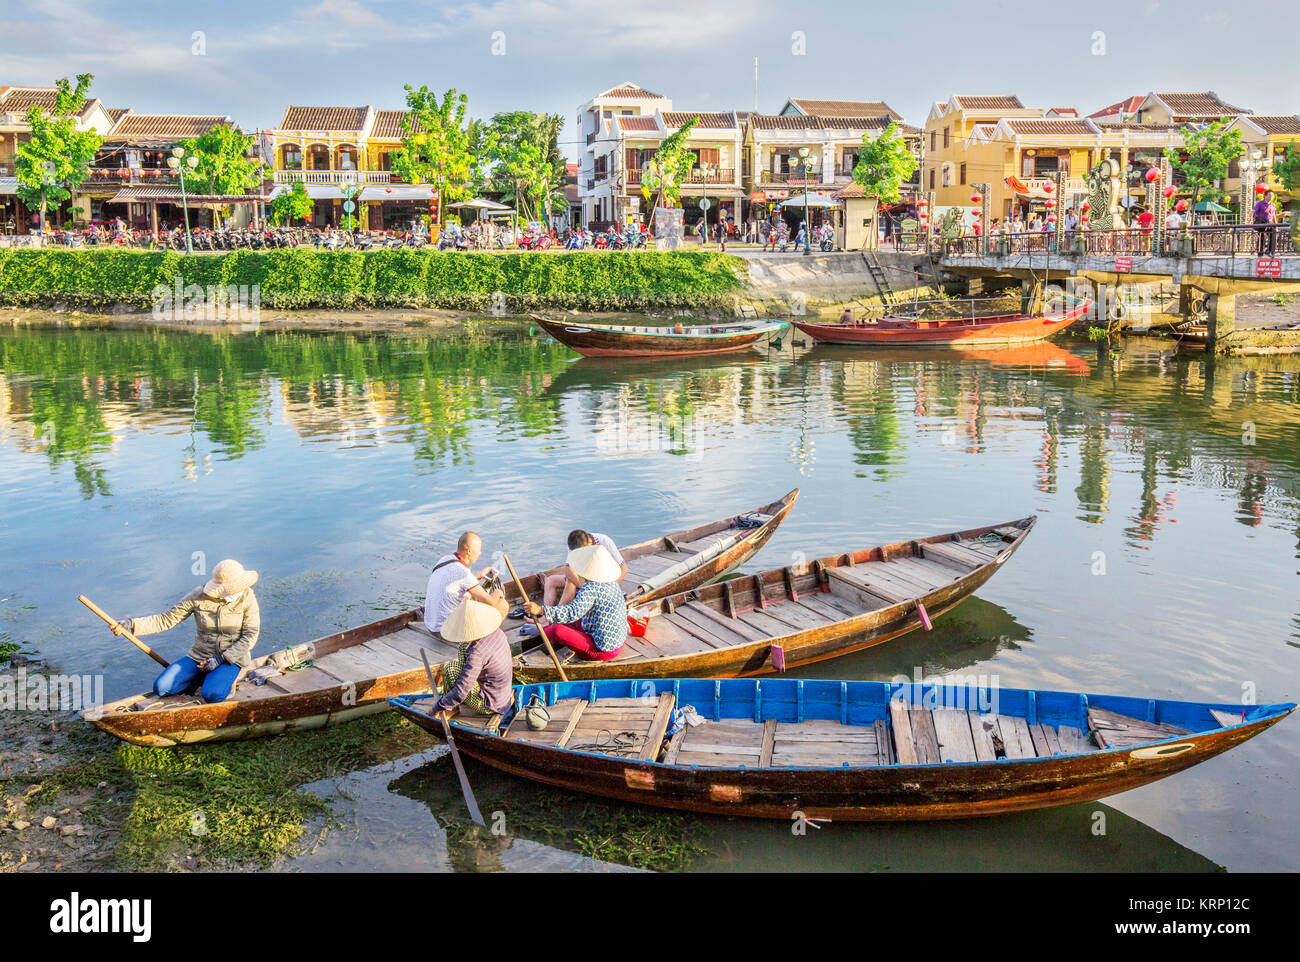 Royalty high quality free stock image  Hoi An, Vietnam - Stock Image